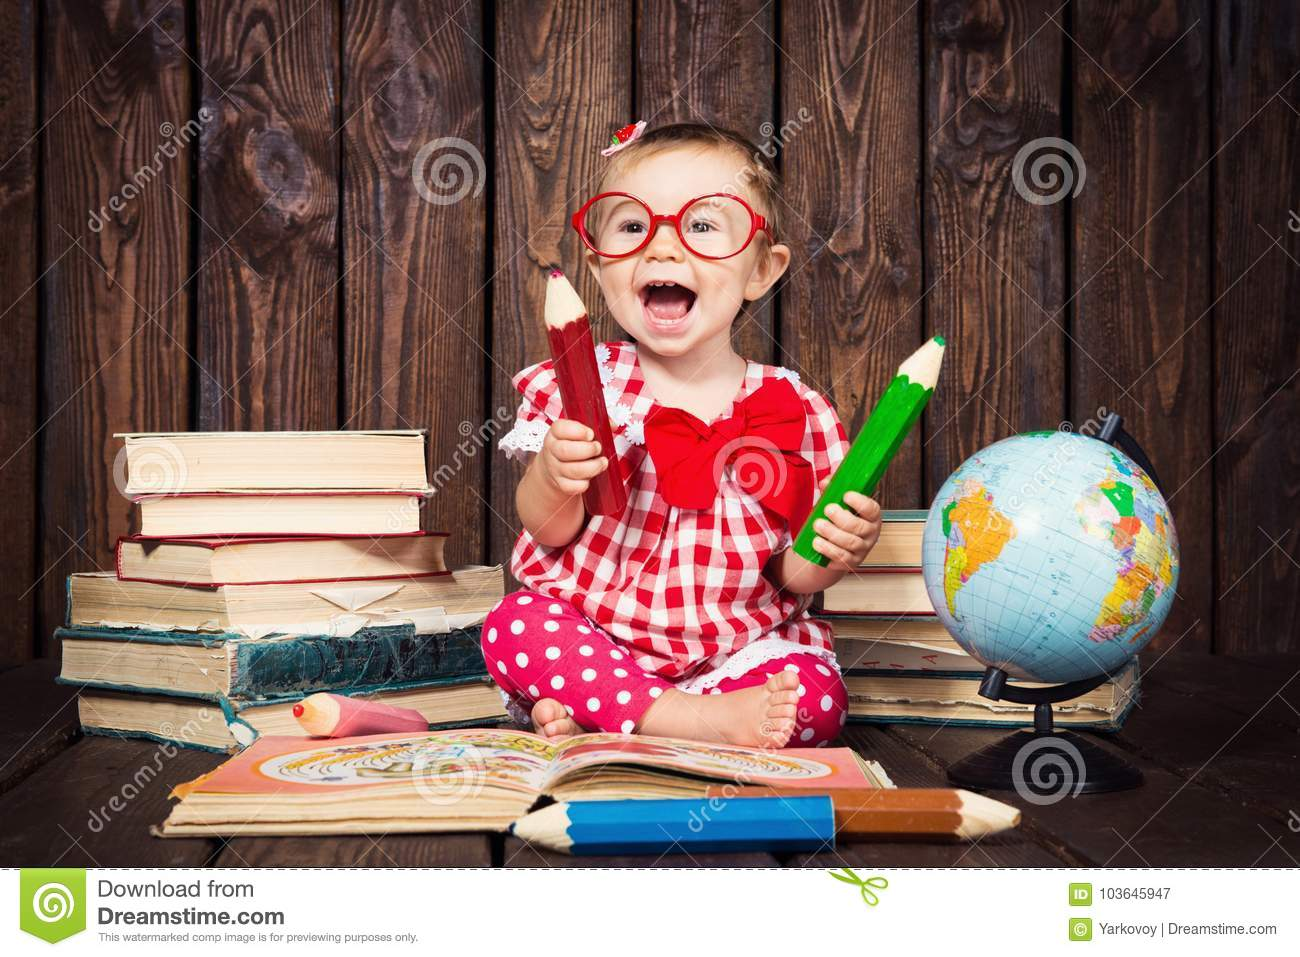 Happy a nice little girl with glasses and pencils against the background of books and a globe